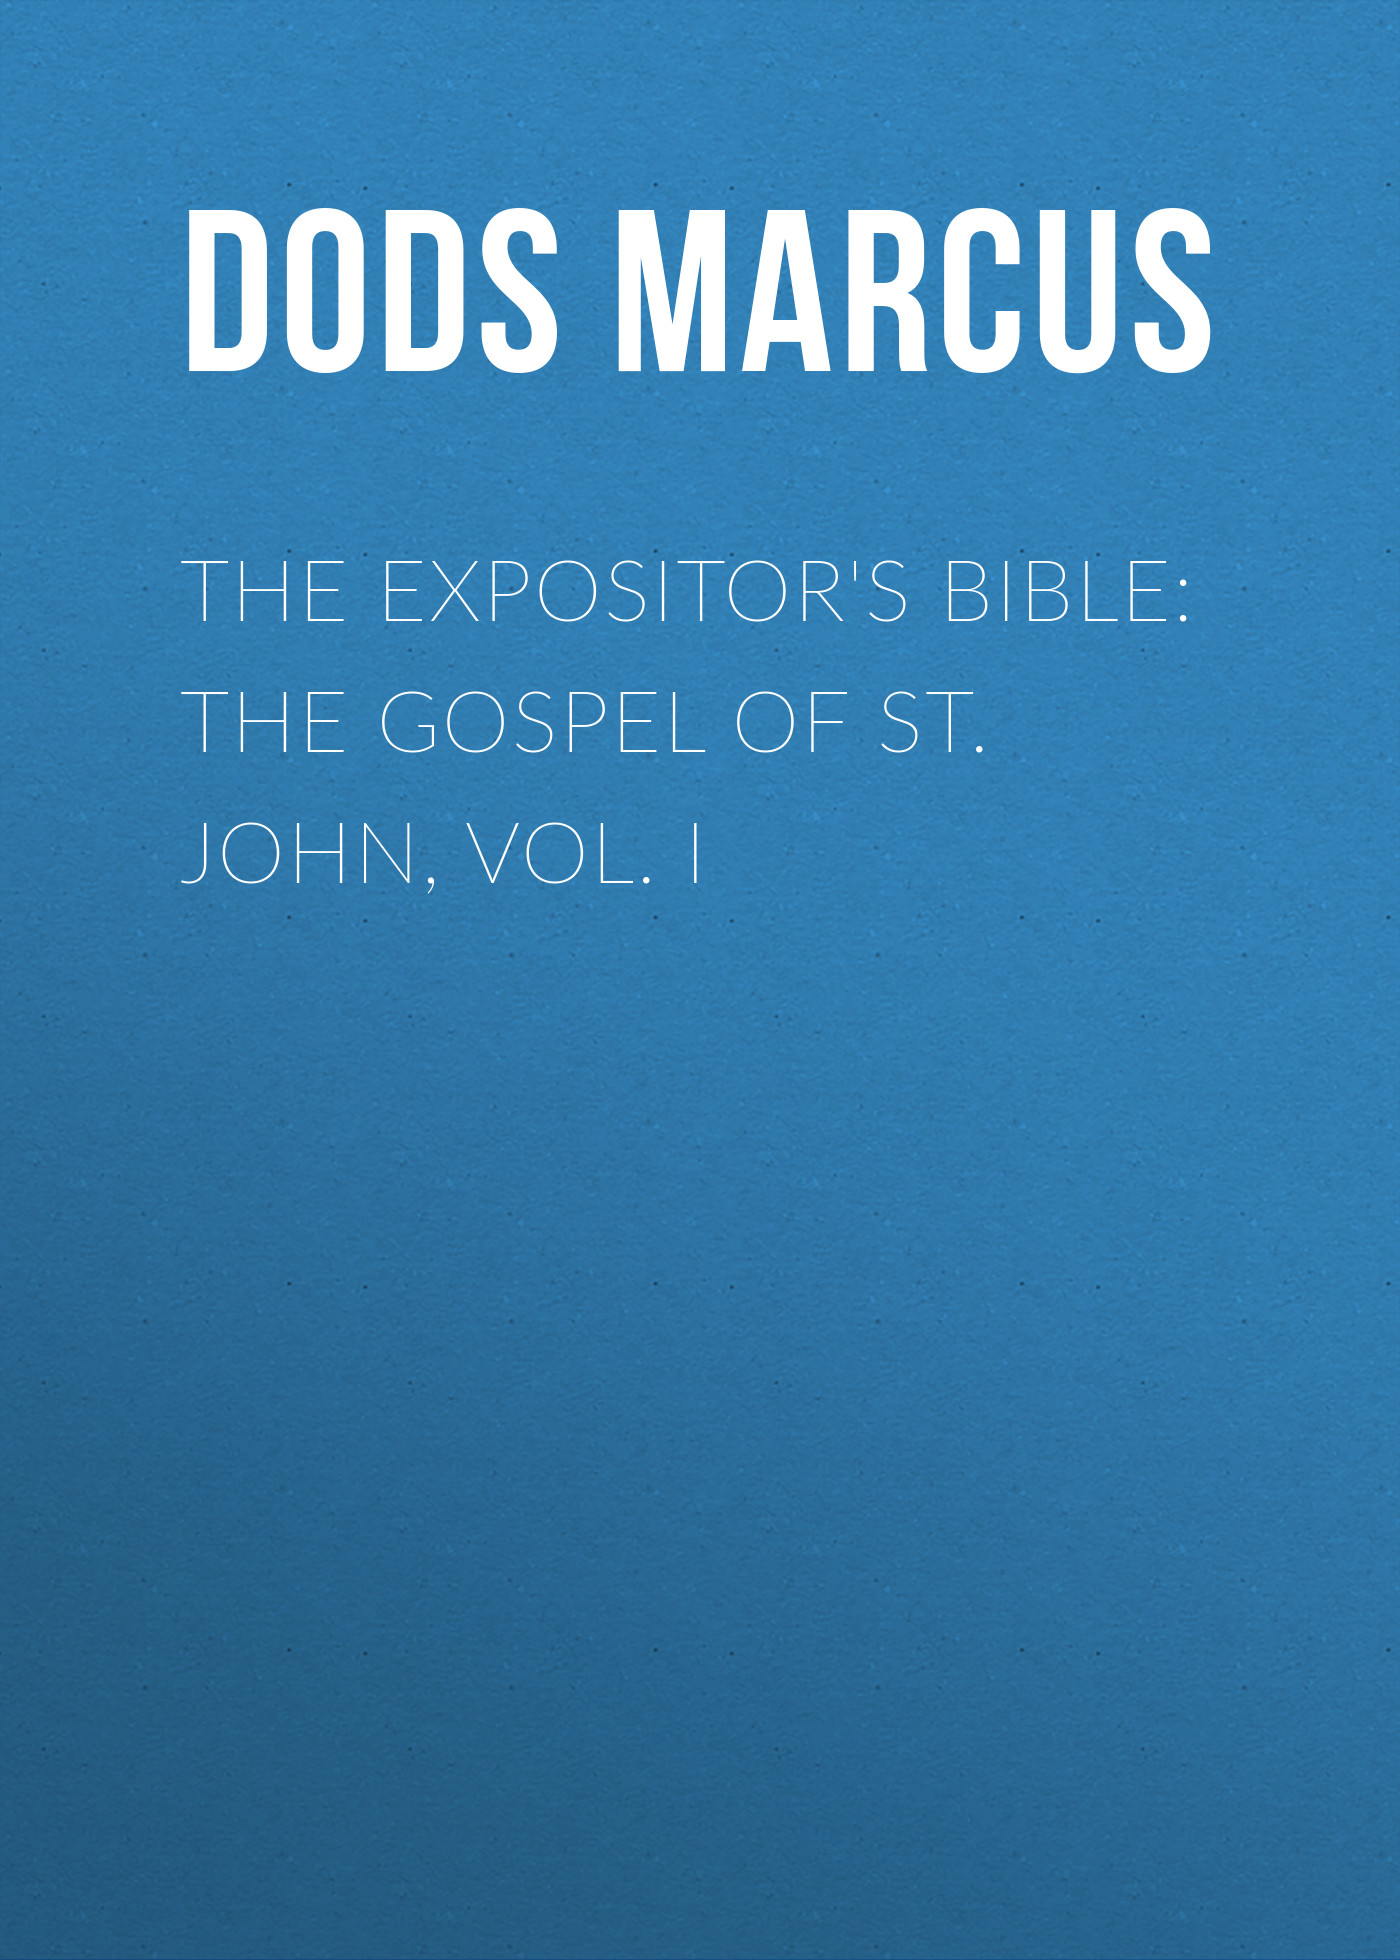 Dods Marcus The Expositor's Bible: The Gospel of St. John, Vol. I все цены